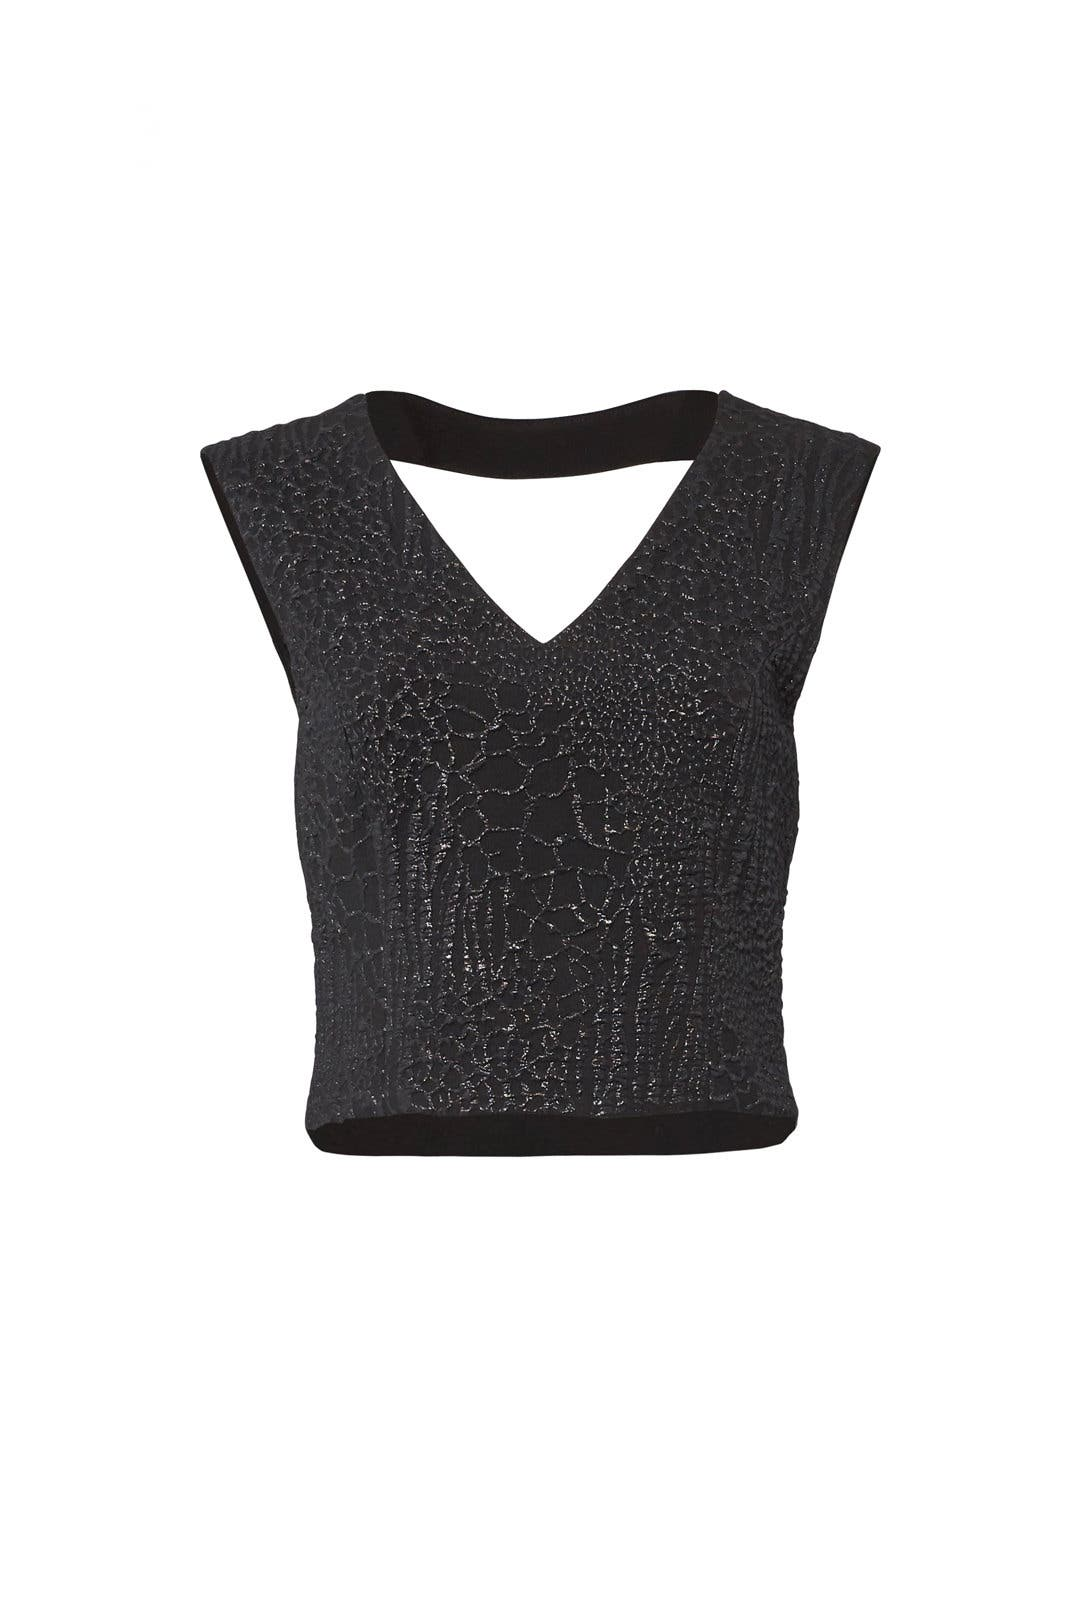 23dc735a0c1c Animal Jacquard Top by Nicole Miller for  45